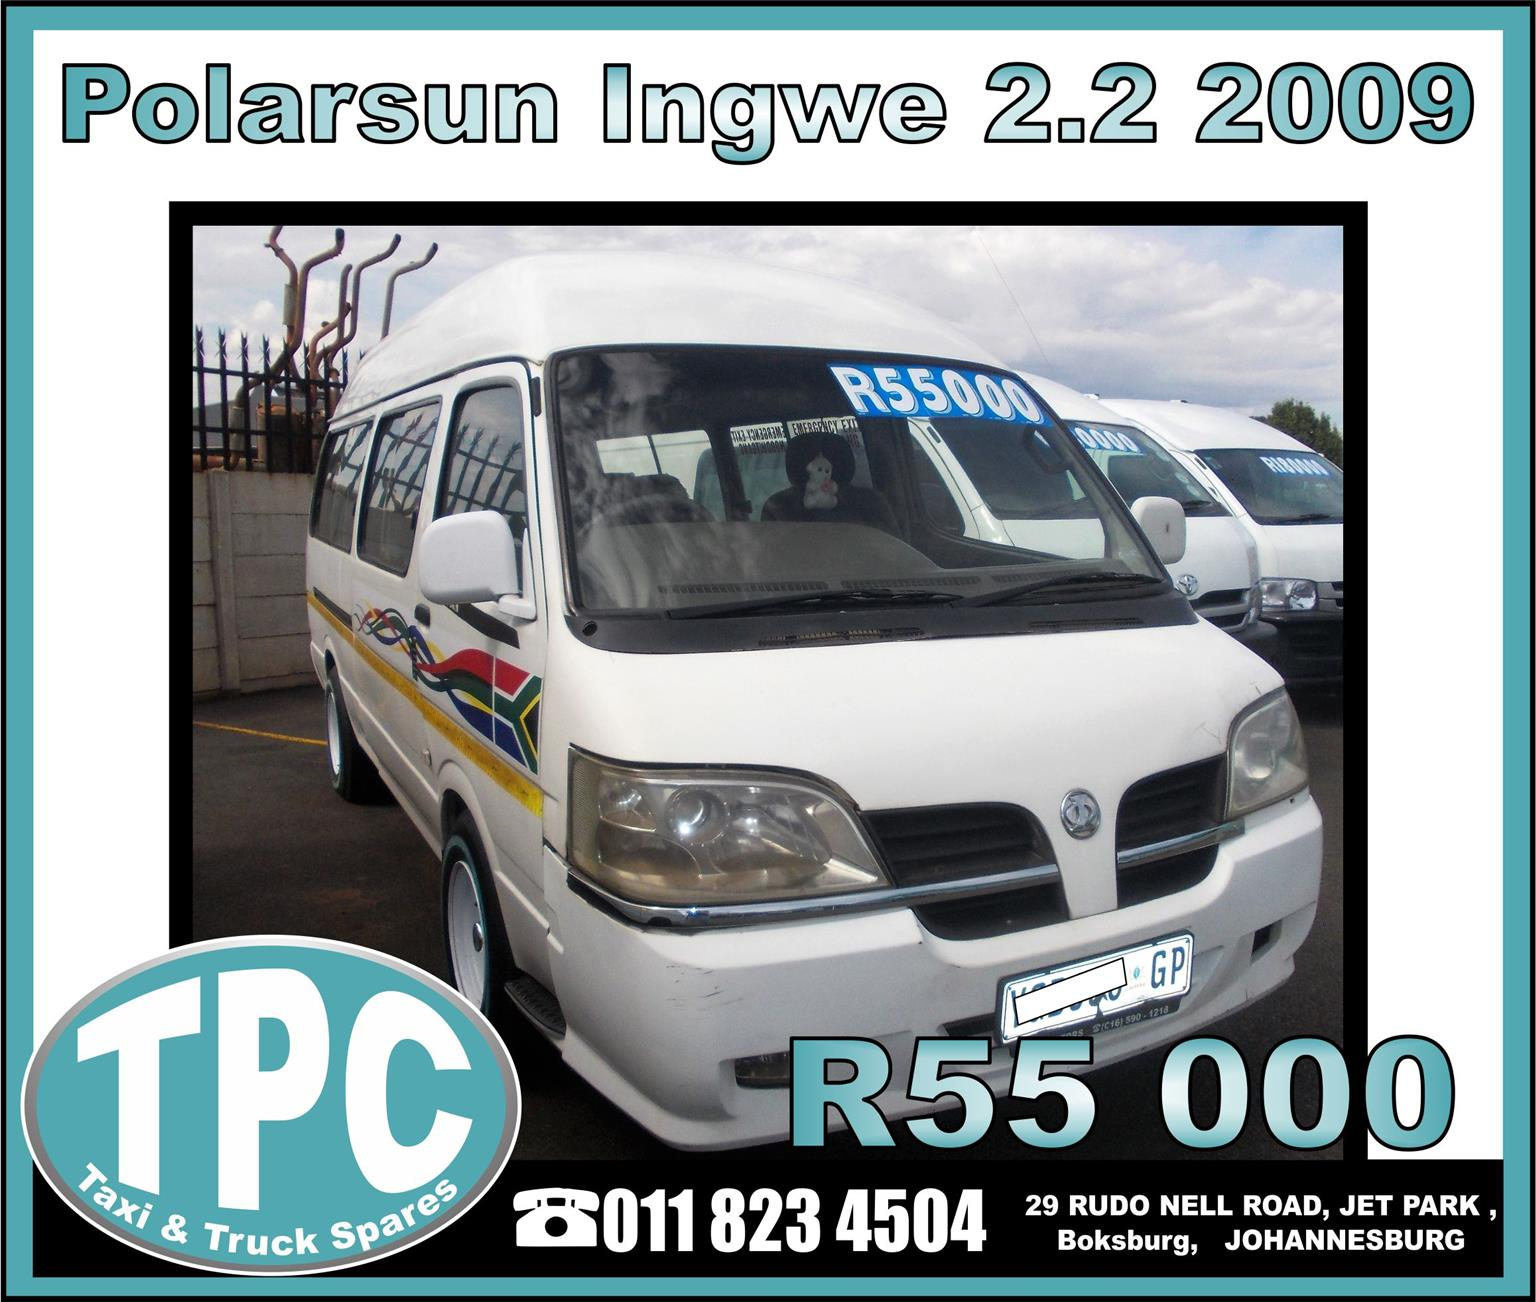 Polarsun Ingwe 2.2 2009 - Good Condition